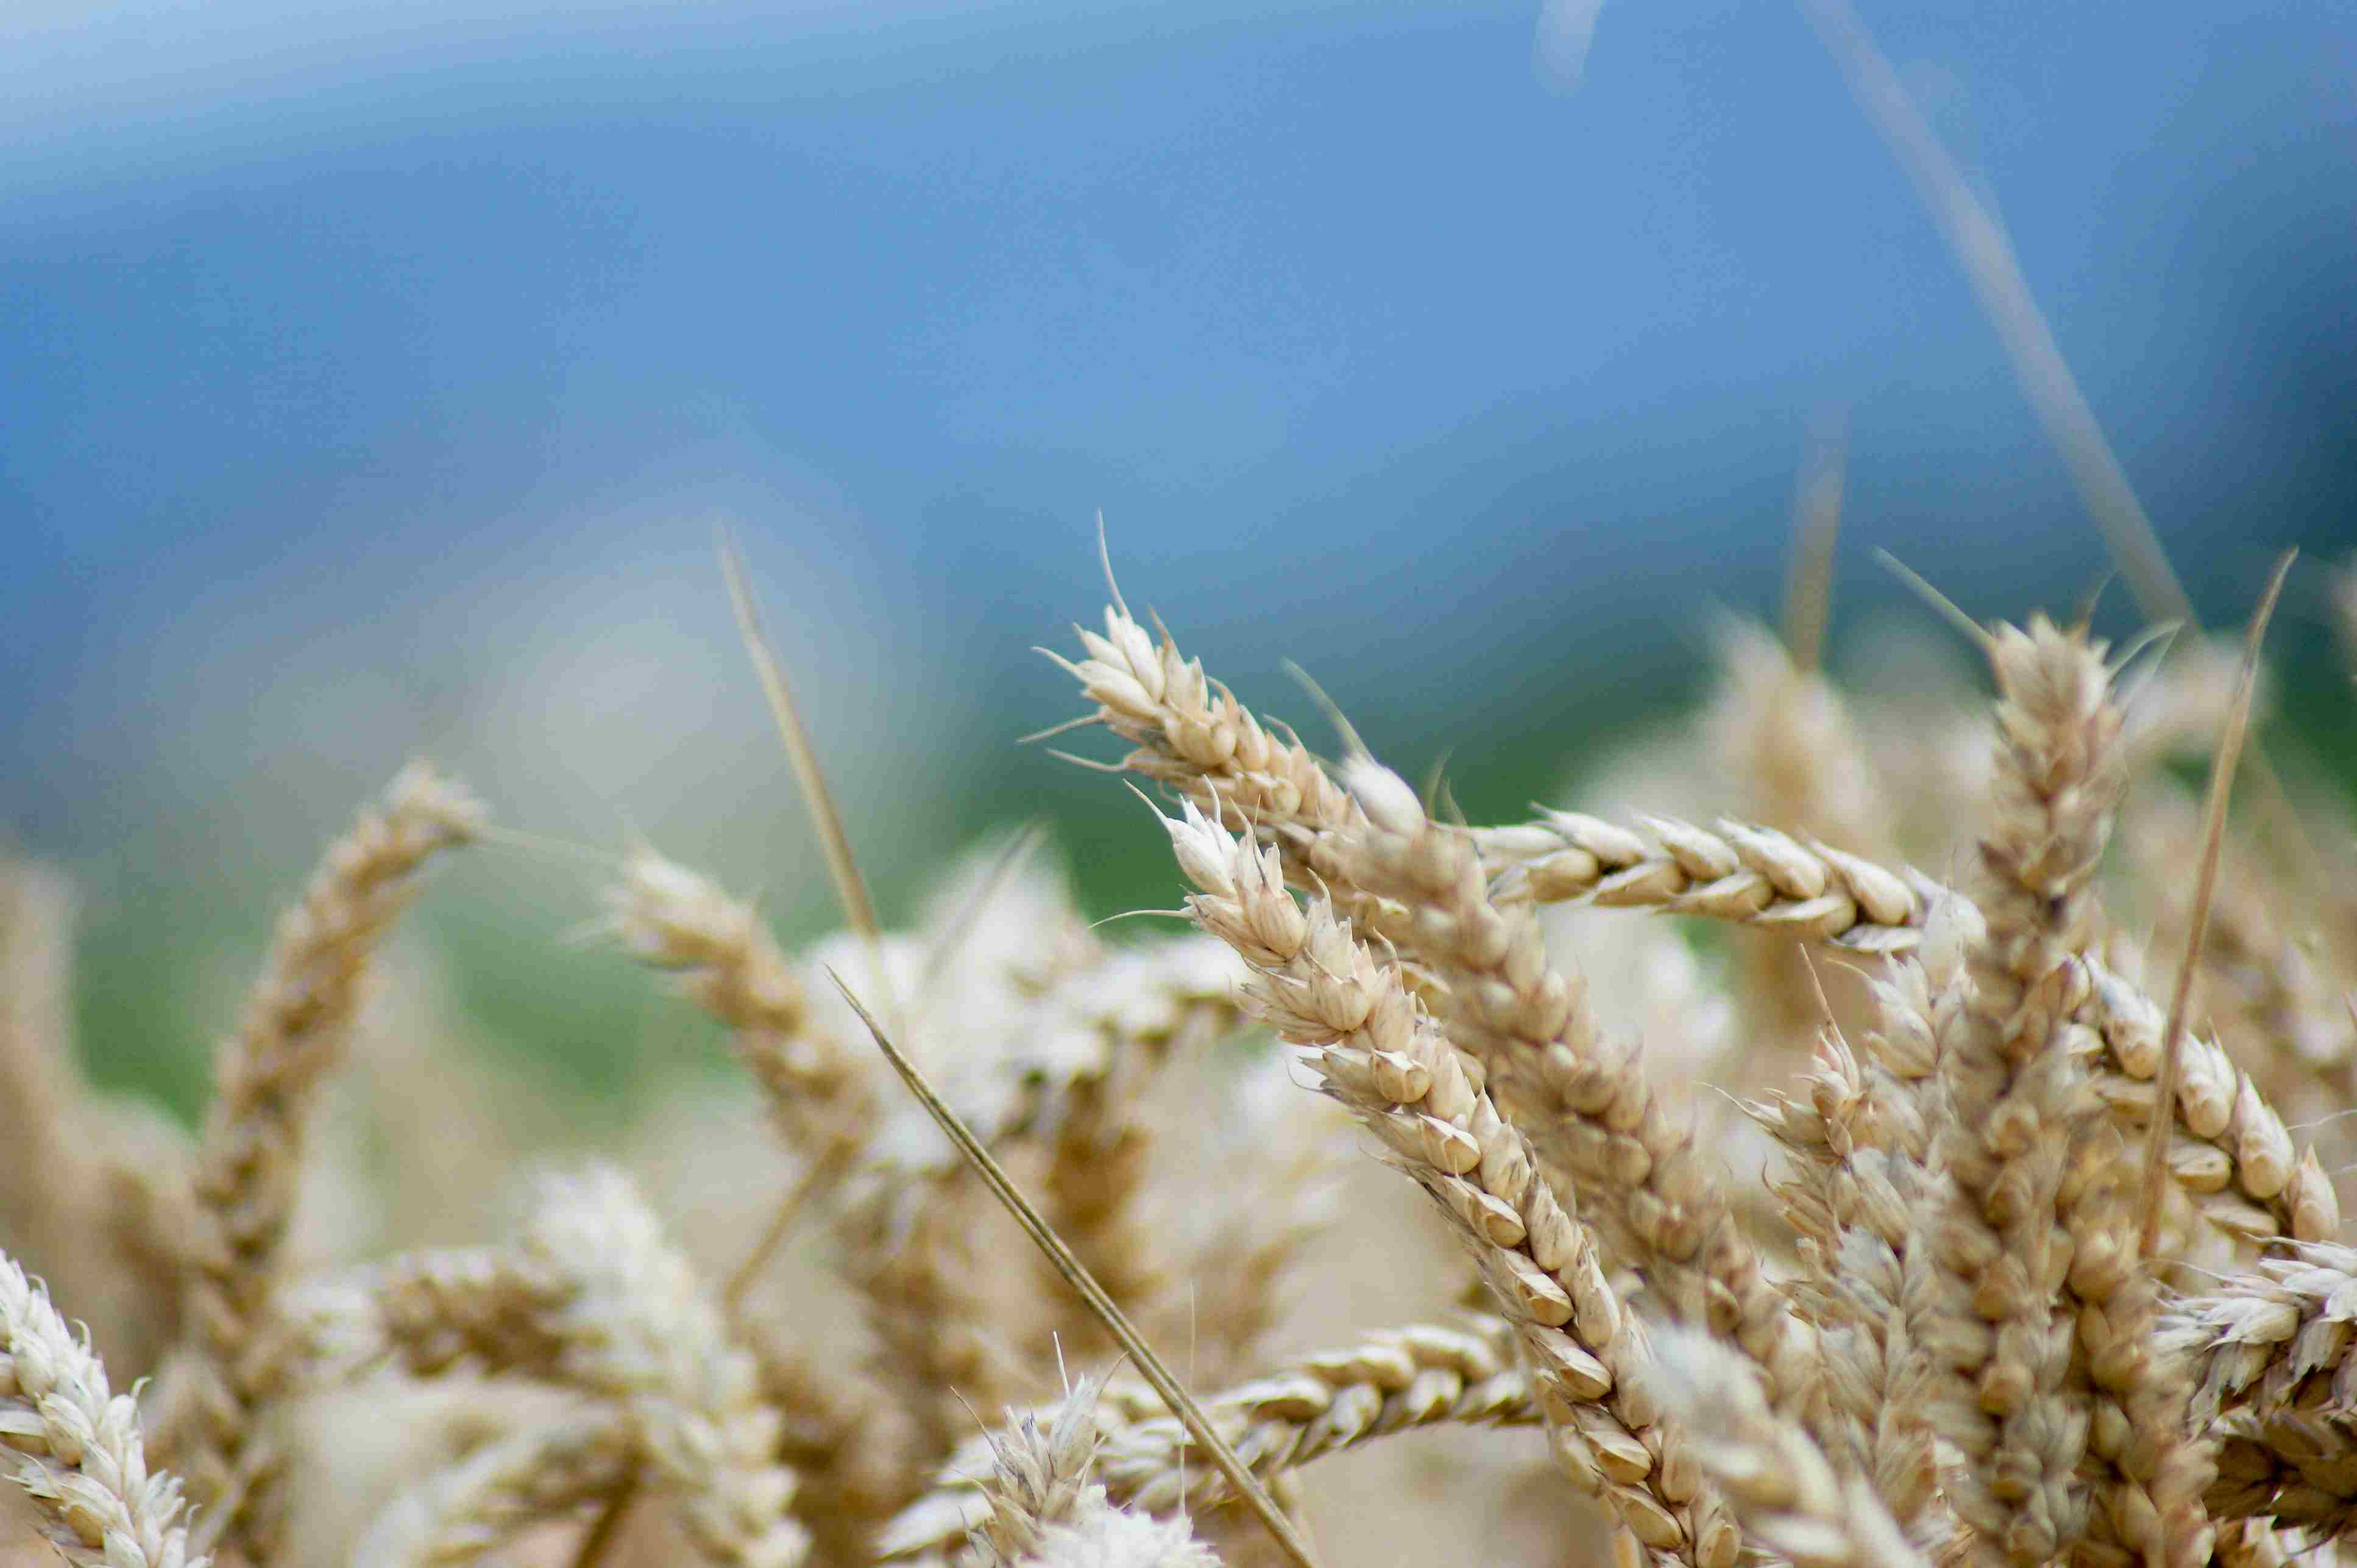 Close-up view of wheat with blurry sky in the background